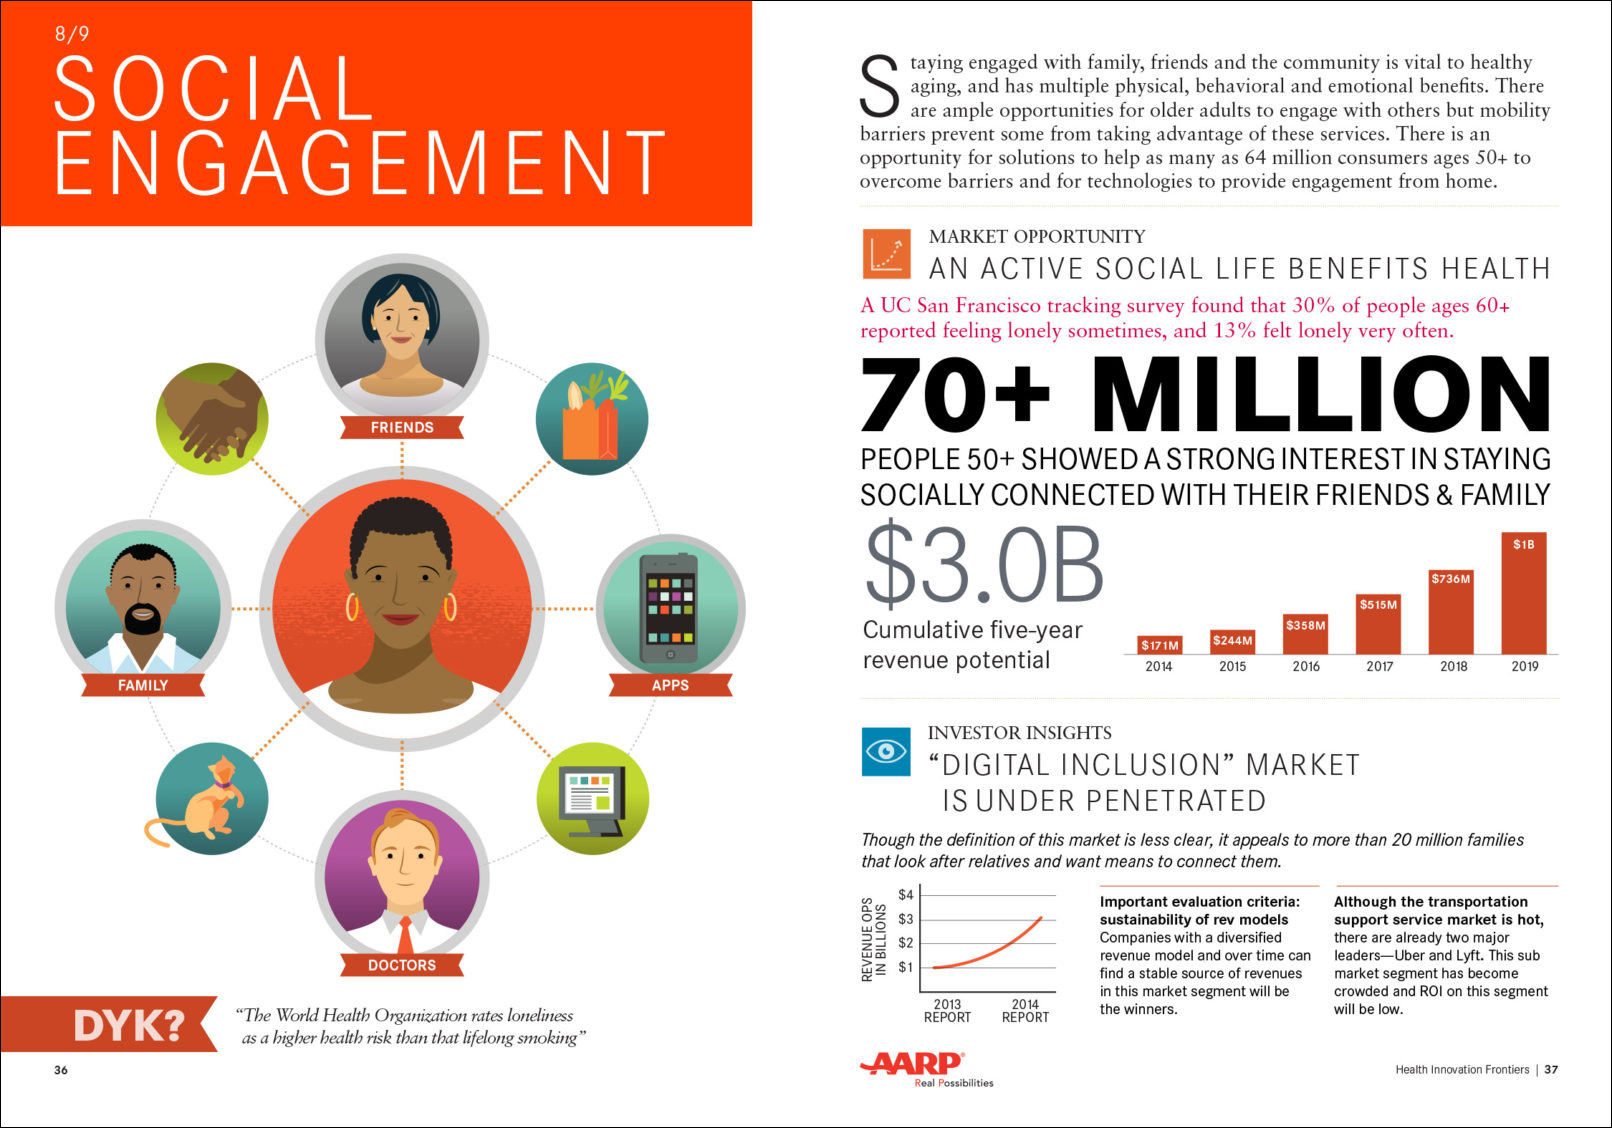 Health Innovation Frontiers report for AARP